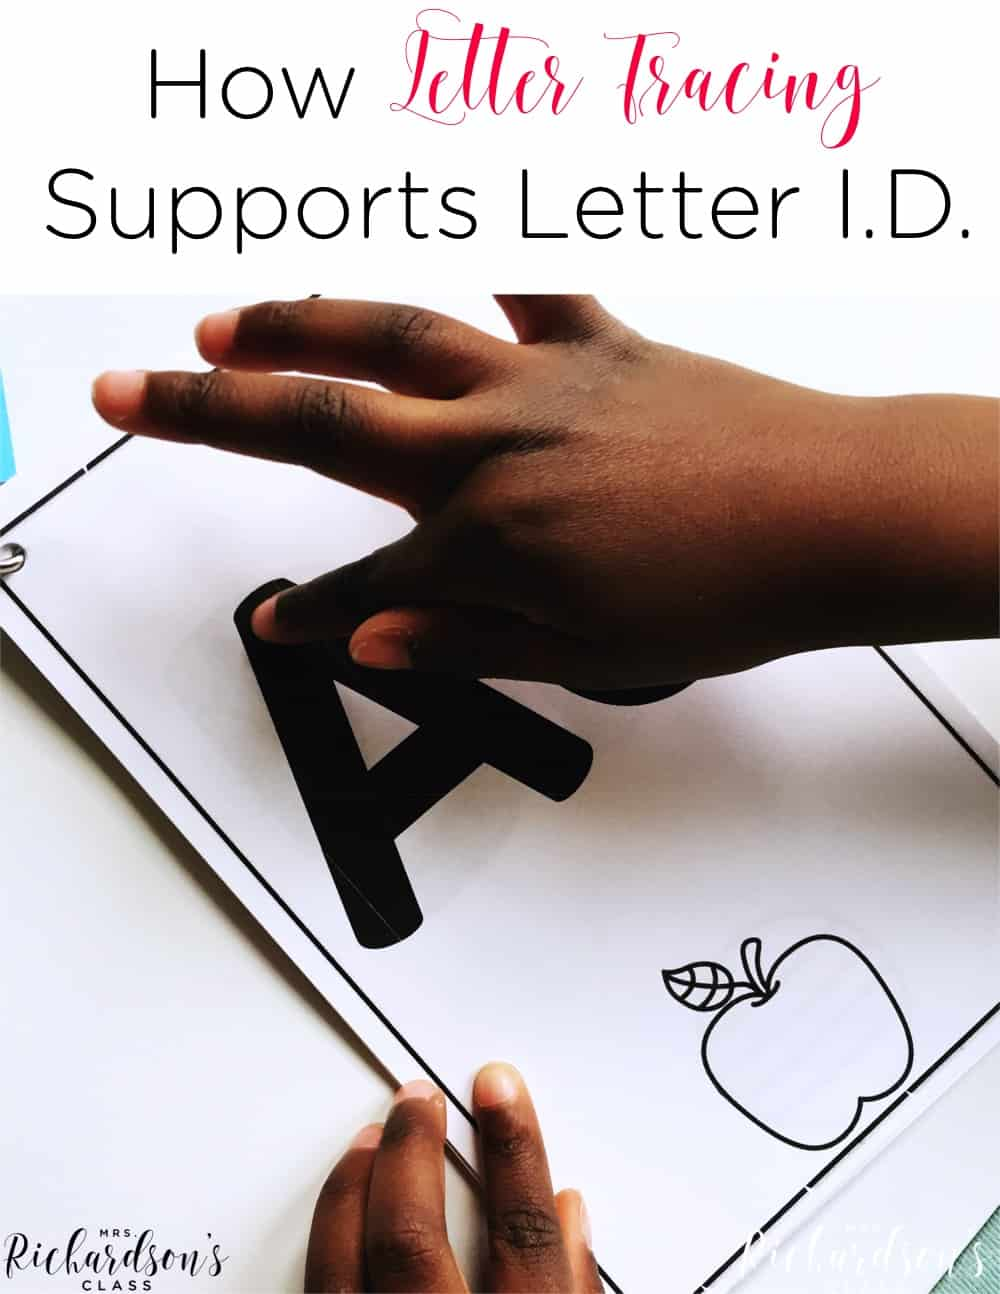 Letter tracing is a simple way to help students who are struggling with letter id! All you need is a book and teacher and you are set! Use this FREE letter identification activity as a warm up in your guided reading groups, have a tutor use it with a child, or send it home with struggling students!